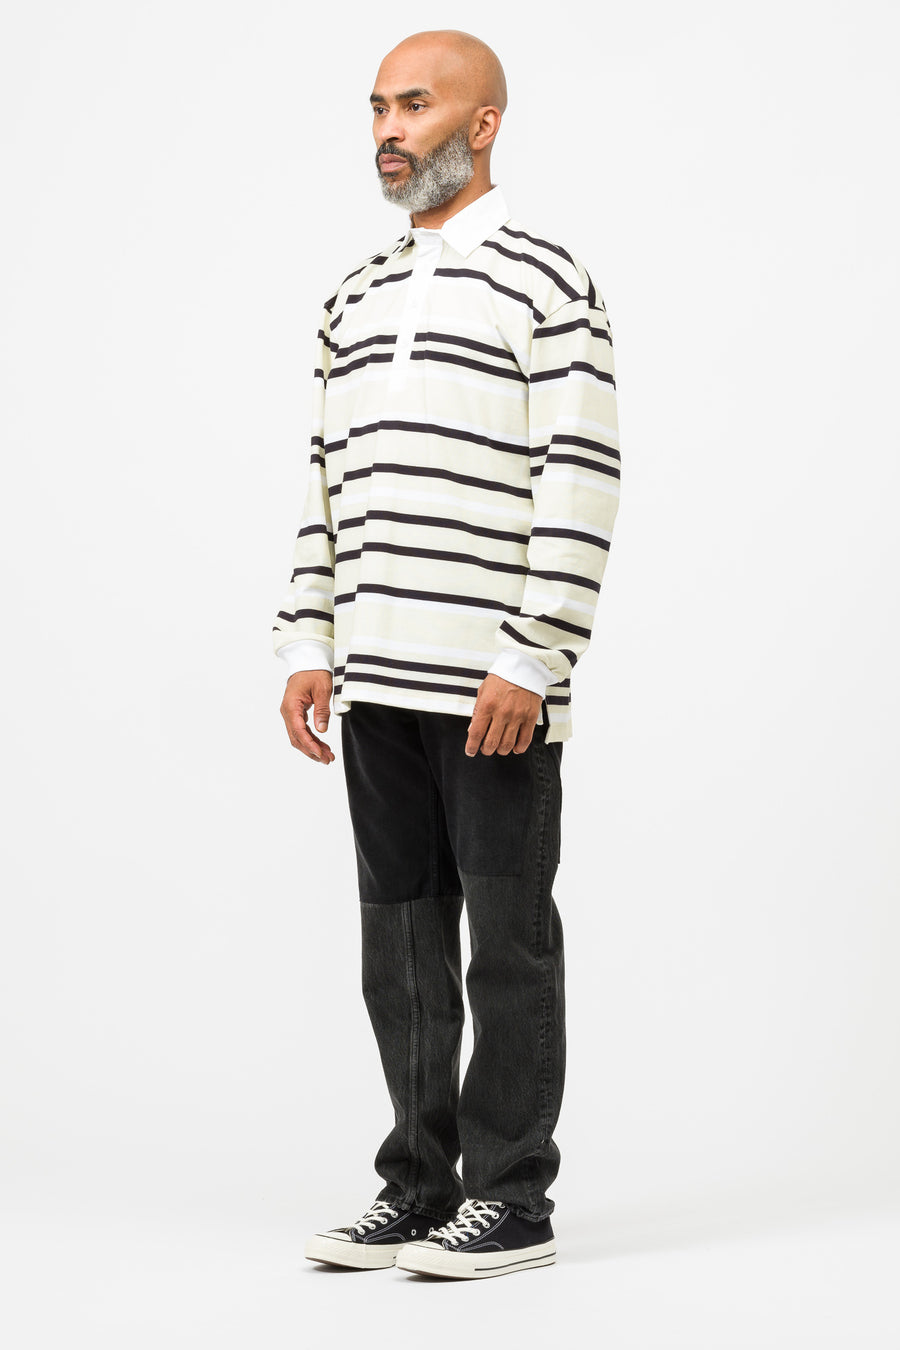 J.W. Anderson Striped Rugby Jersey Polo Shirt in Artichoke - Notre